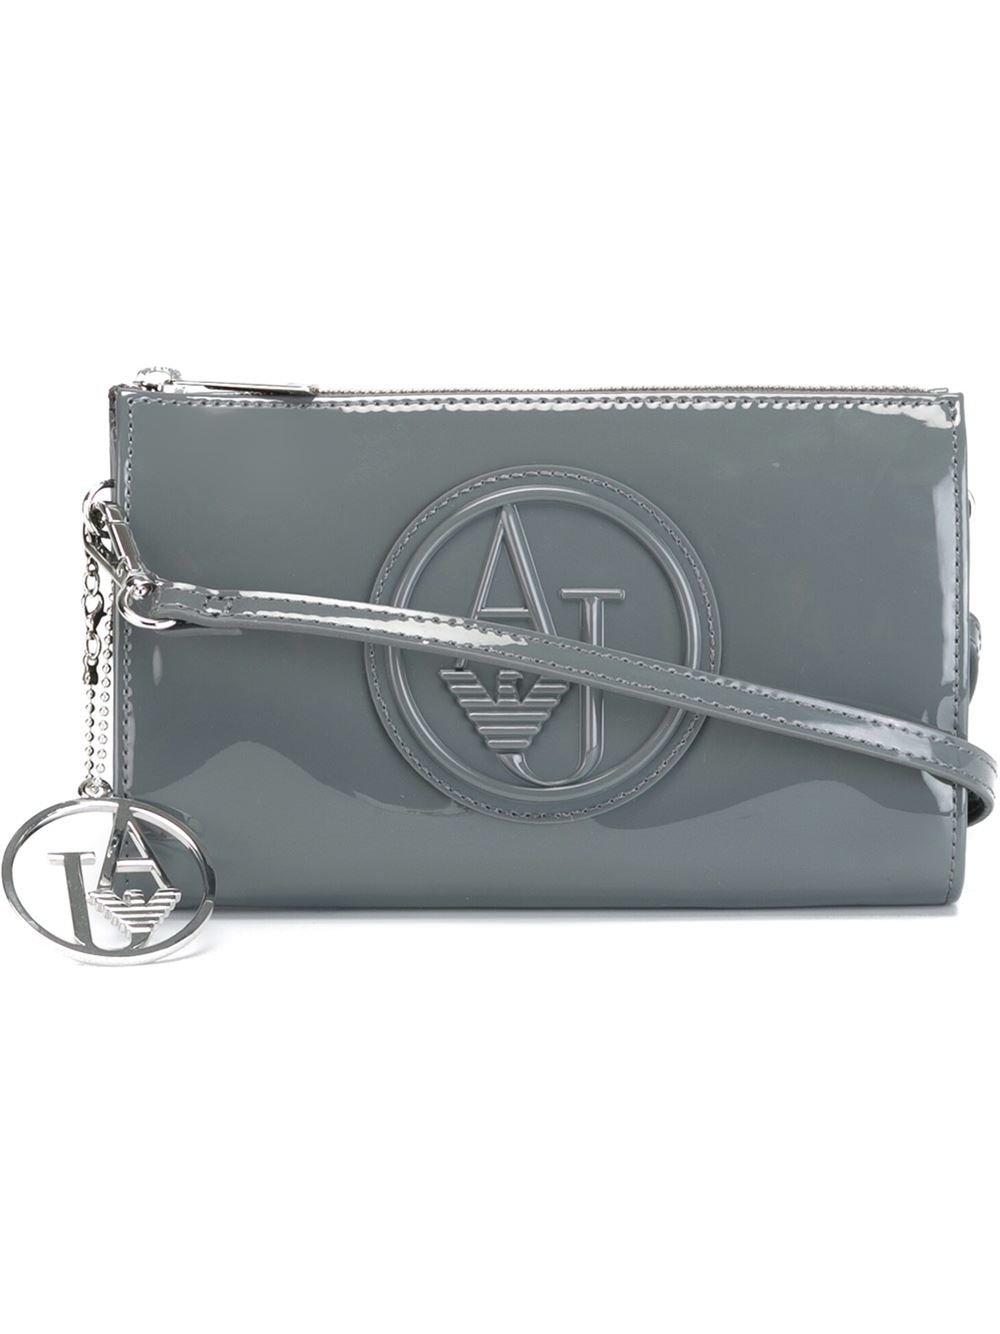 Lyst - Armani Jeans Mini Crossbody Bag With Logo in Blue a63c461c7b7